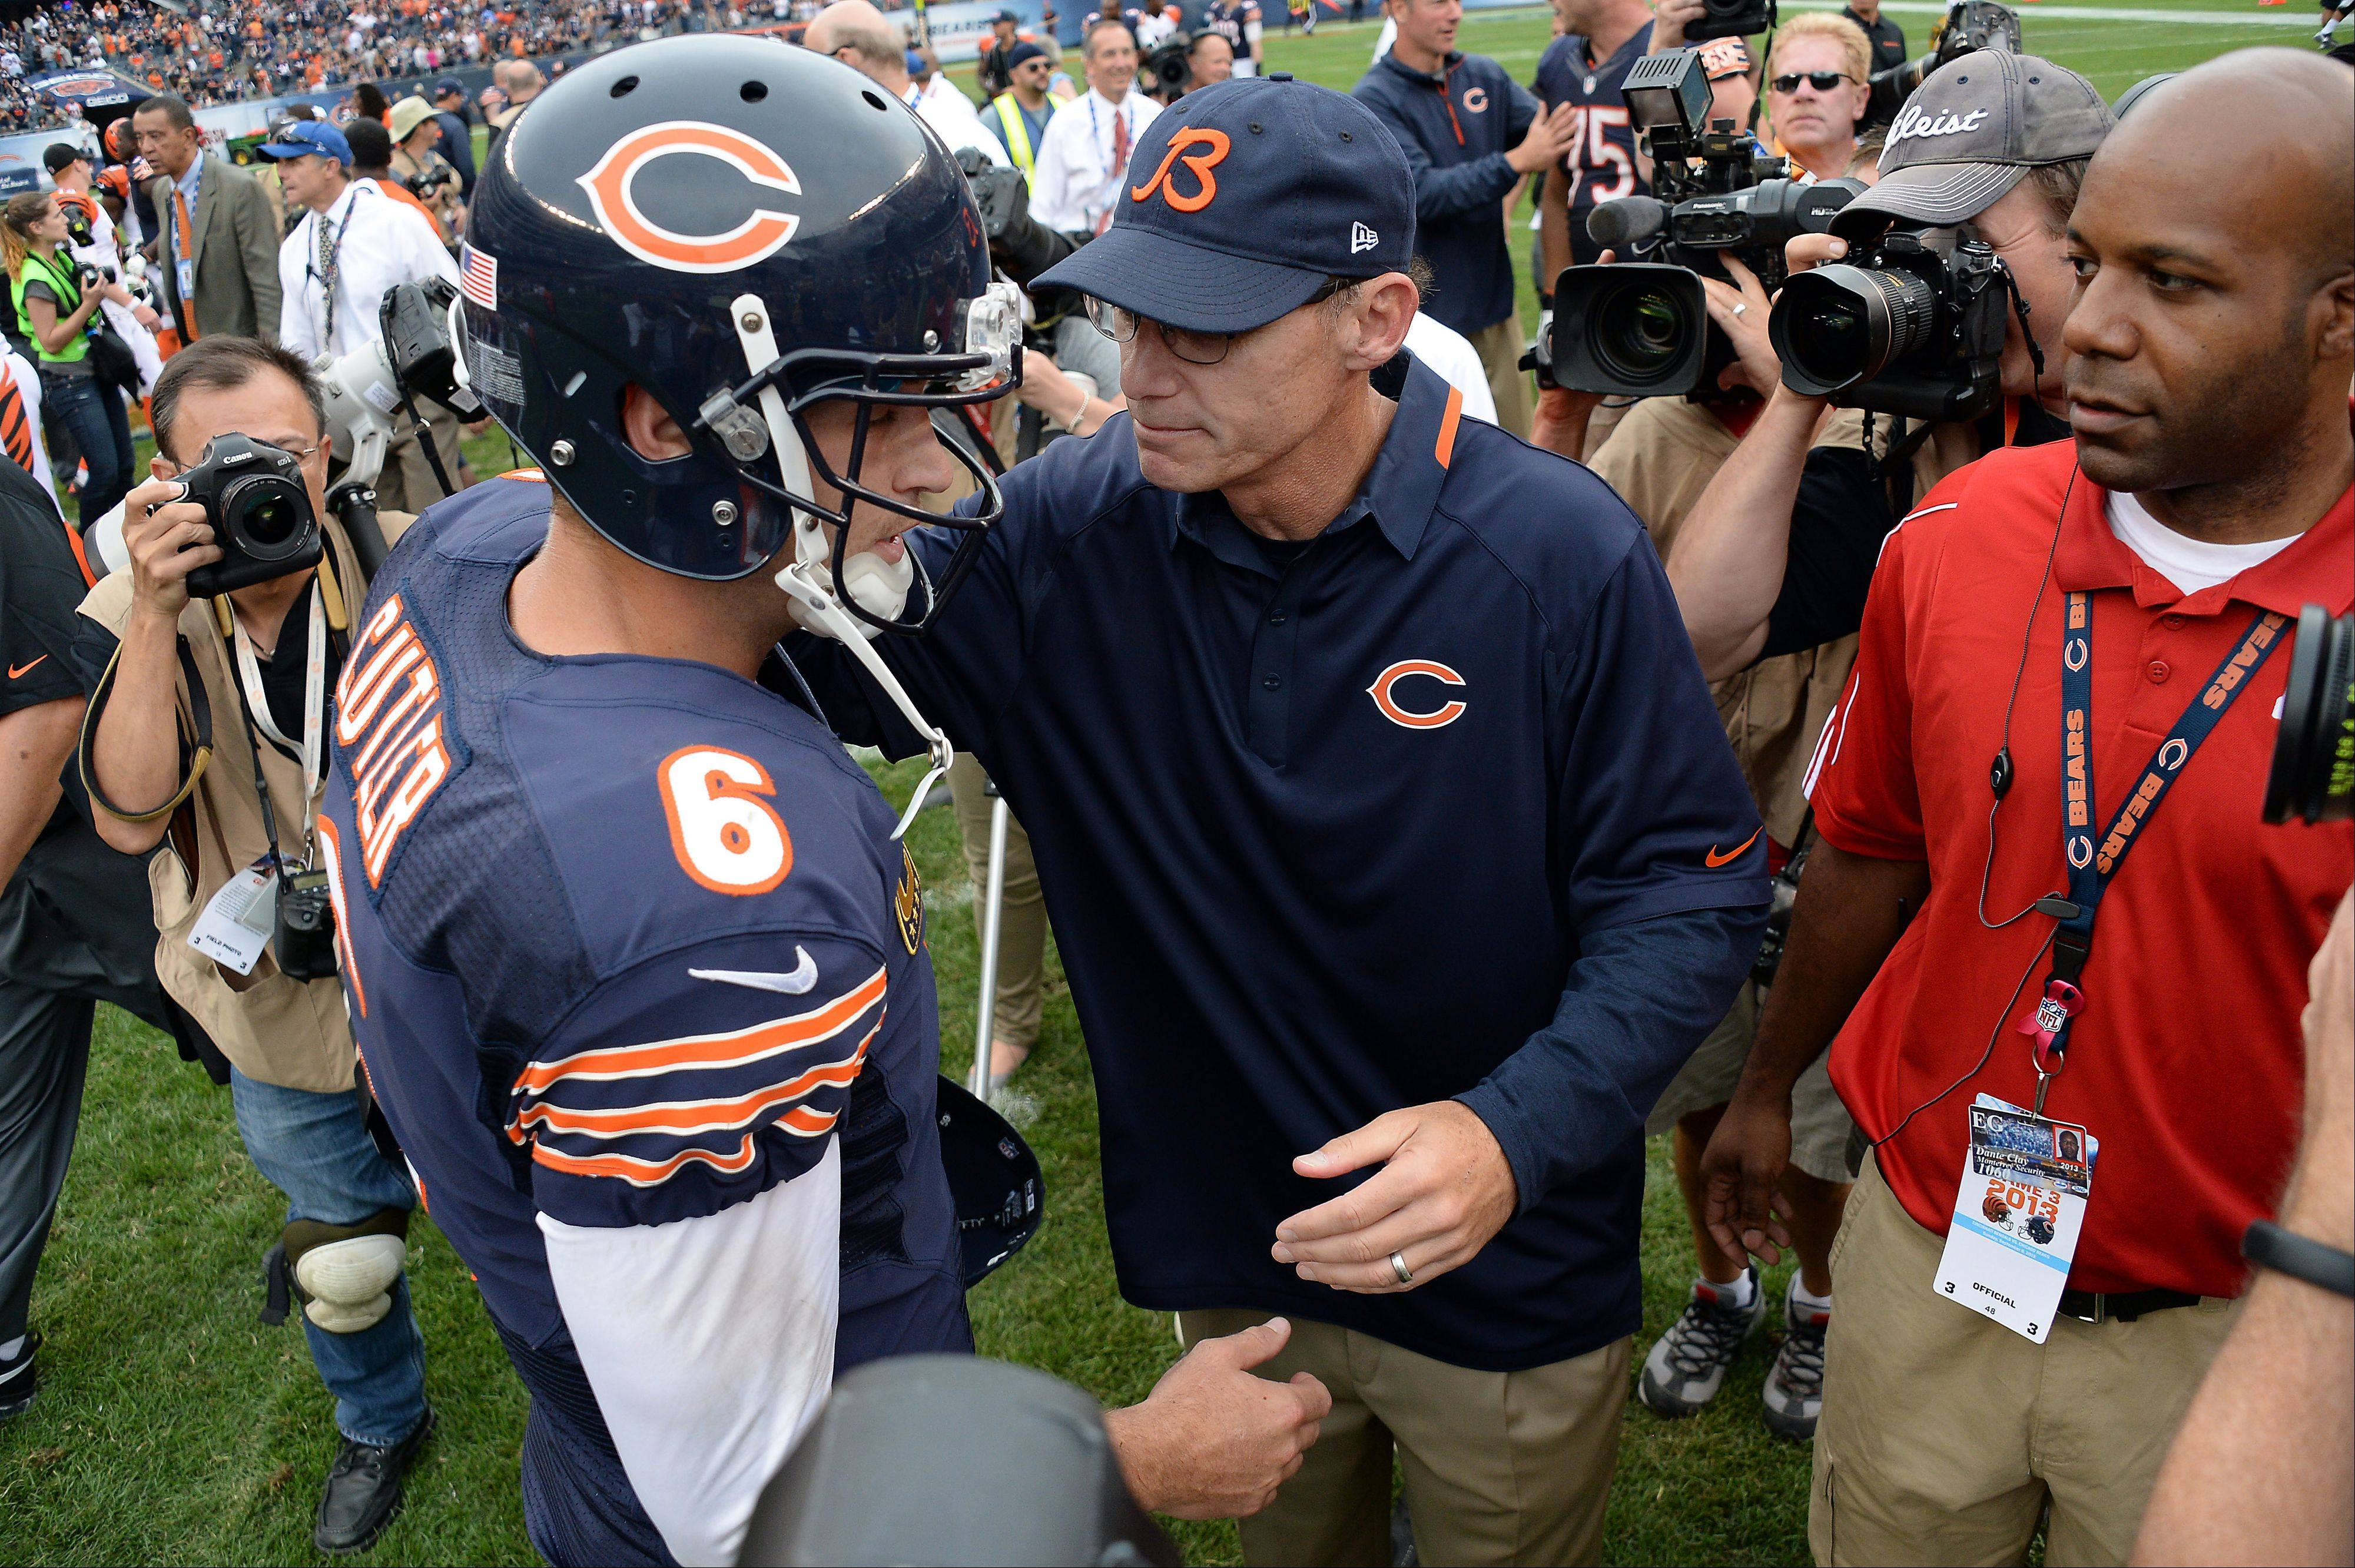 Chicago Bears coach Marc Trestman and quarterback Jay Cutler come together in a moment after the game to congratulate each other in the season opener against the Cincinnati Bengals at Soldier Field in Chicago on Sunday.